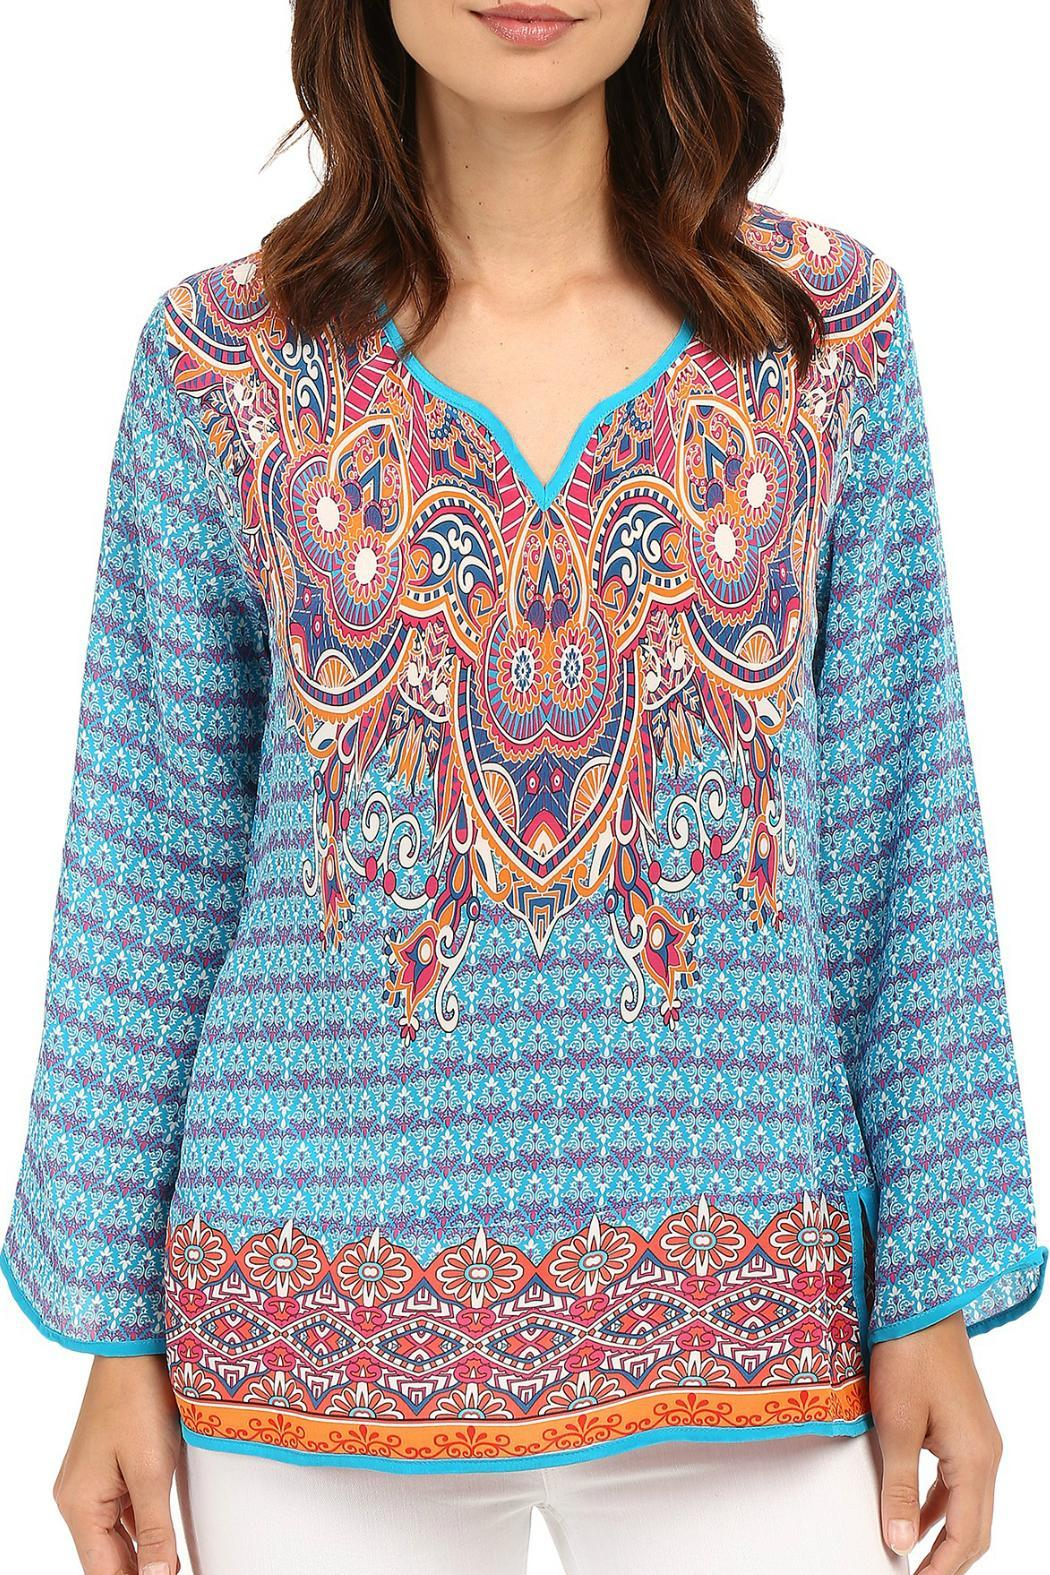 Tolani Mixed Print Blouse - Front Cropped Image